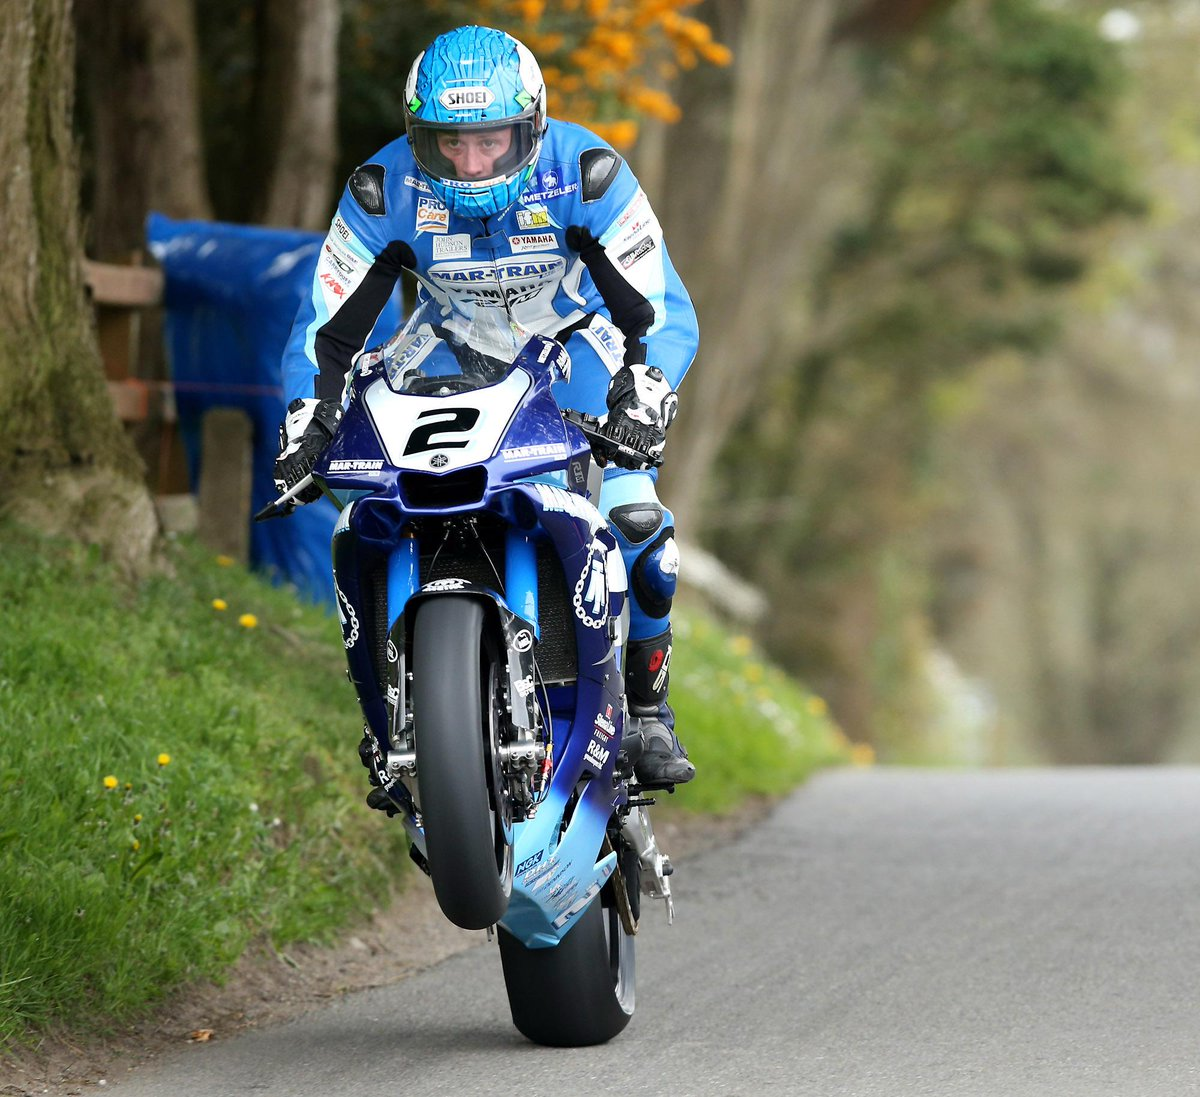 [Road Racing] Cookstown 100 2015 CDXaEuVW8AIzATy